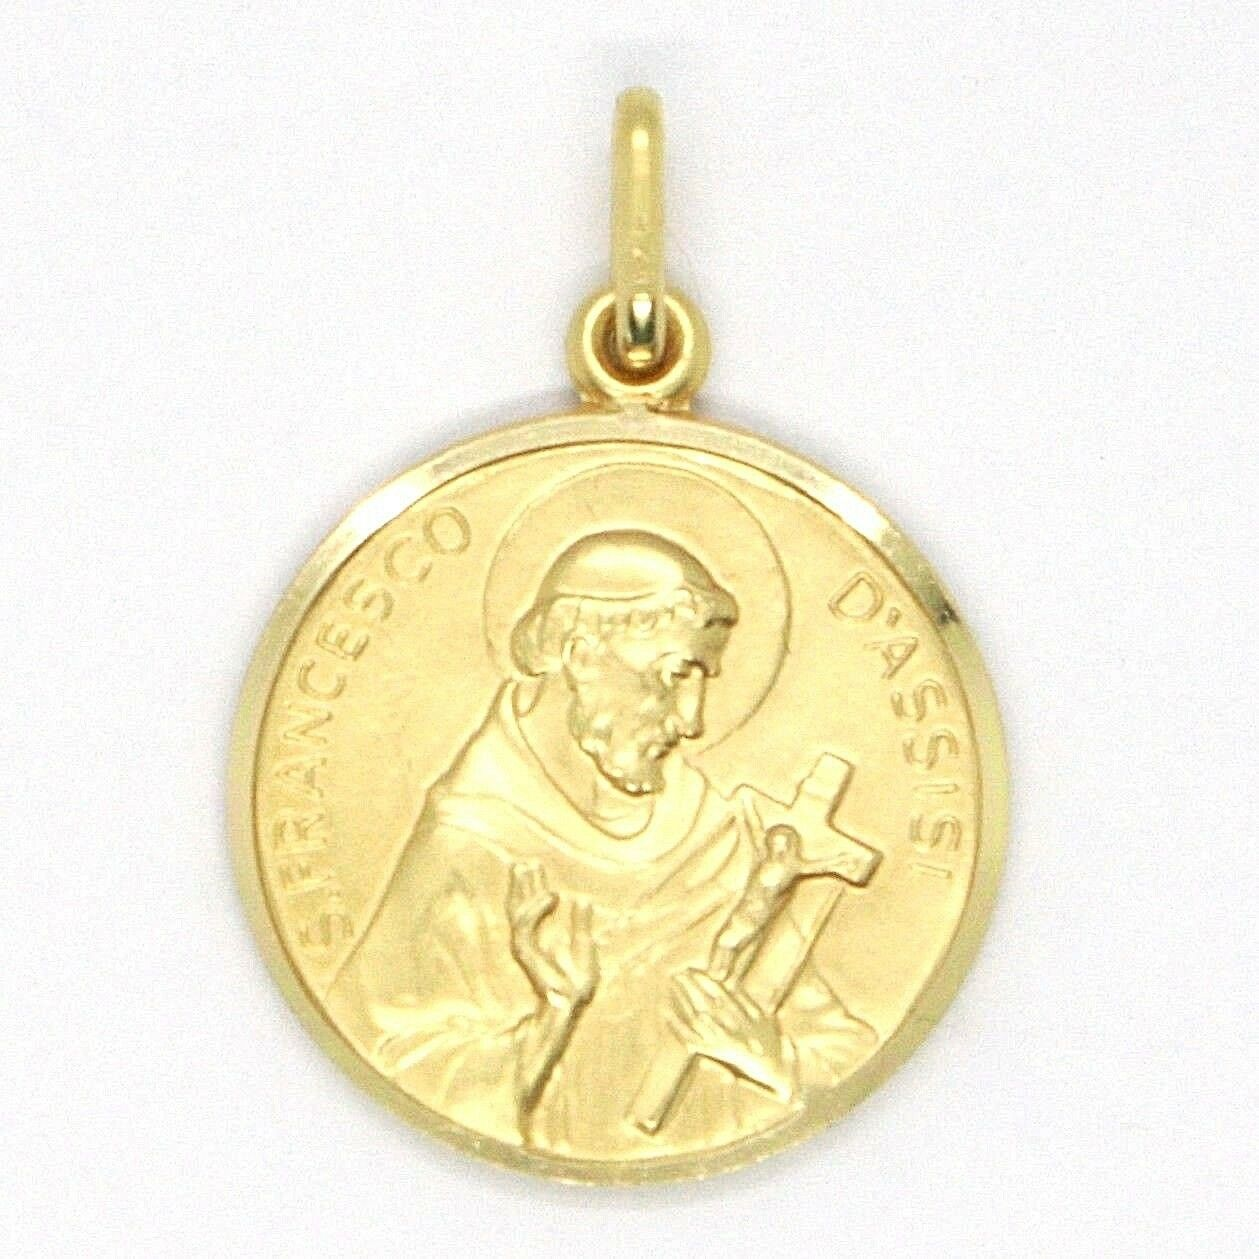 18K YELLOW GOLD ST SAINT FRANCIS FRANCESCO ASSISI MEDAL, MADE IN ITALY, 17 MM